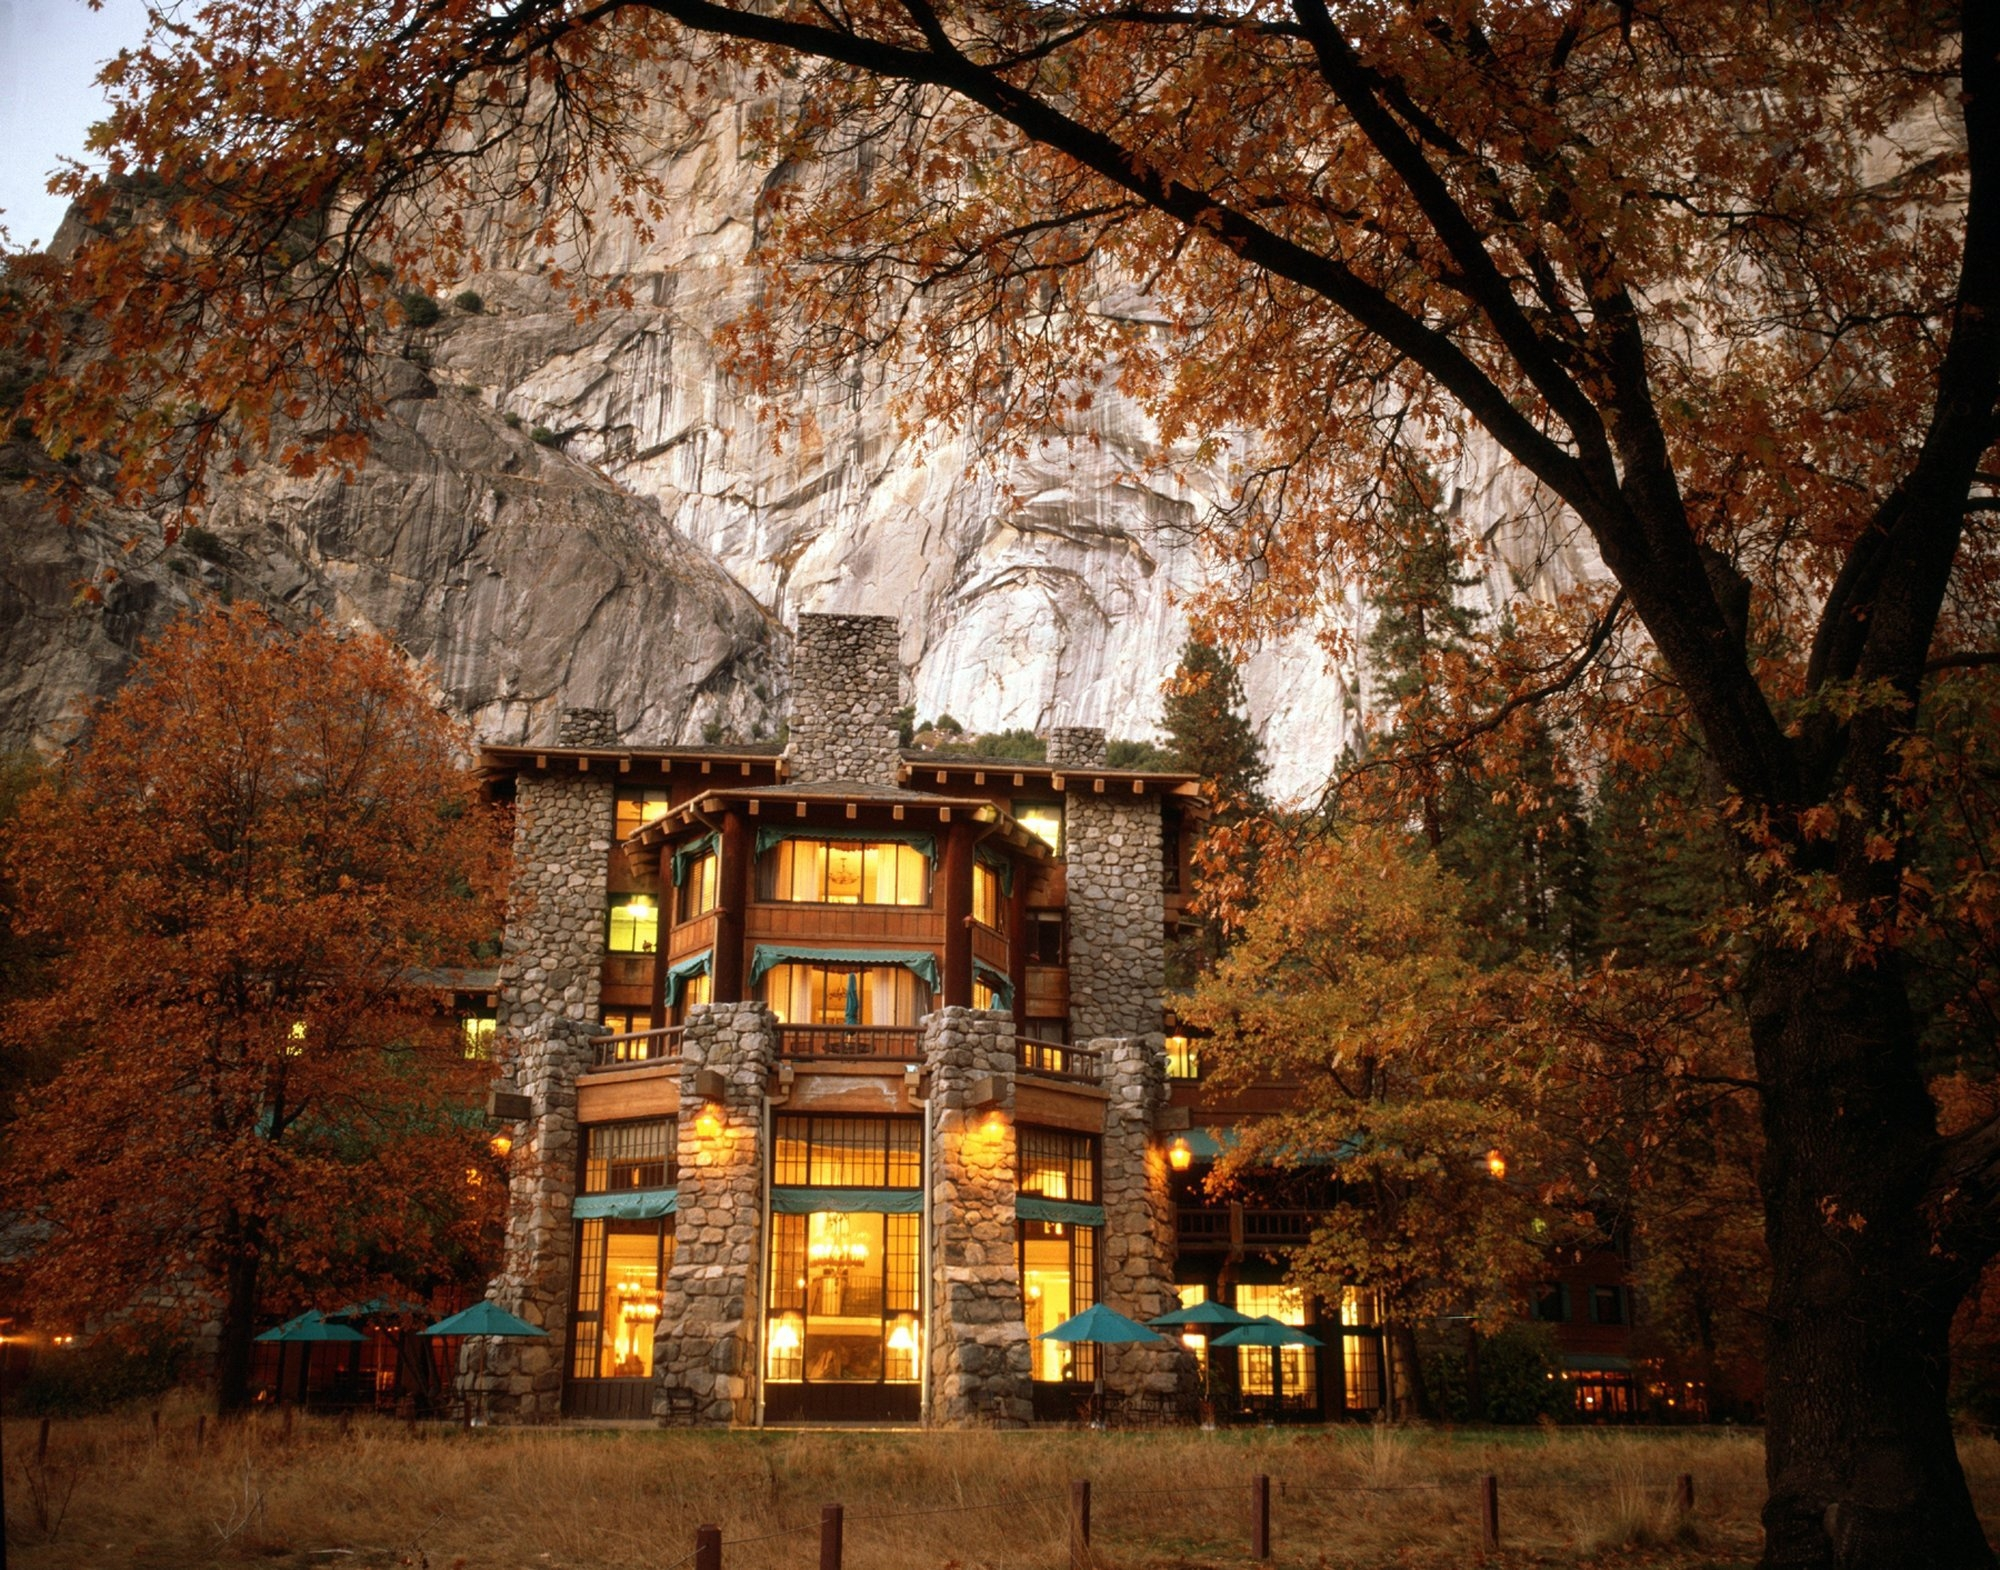 A settlement between Delaware North and the Park Service would permit the restoration of historic names to Yosemite locations such as the Ahwahnee hotel, now rebranded as the Majestic Yosemite Hotel. (Washington Post)